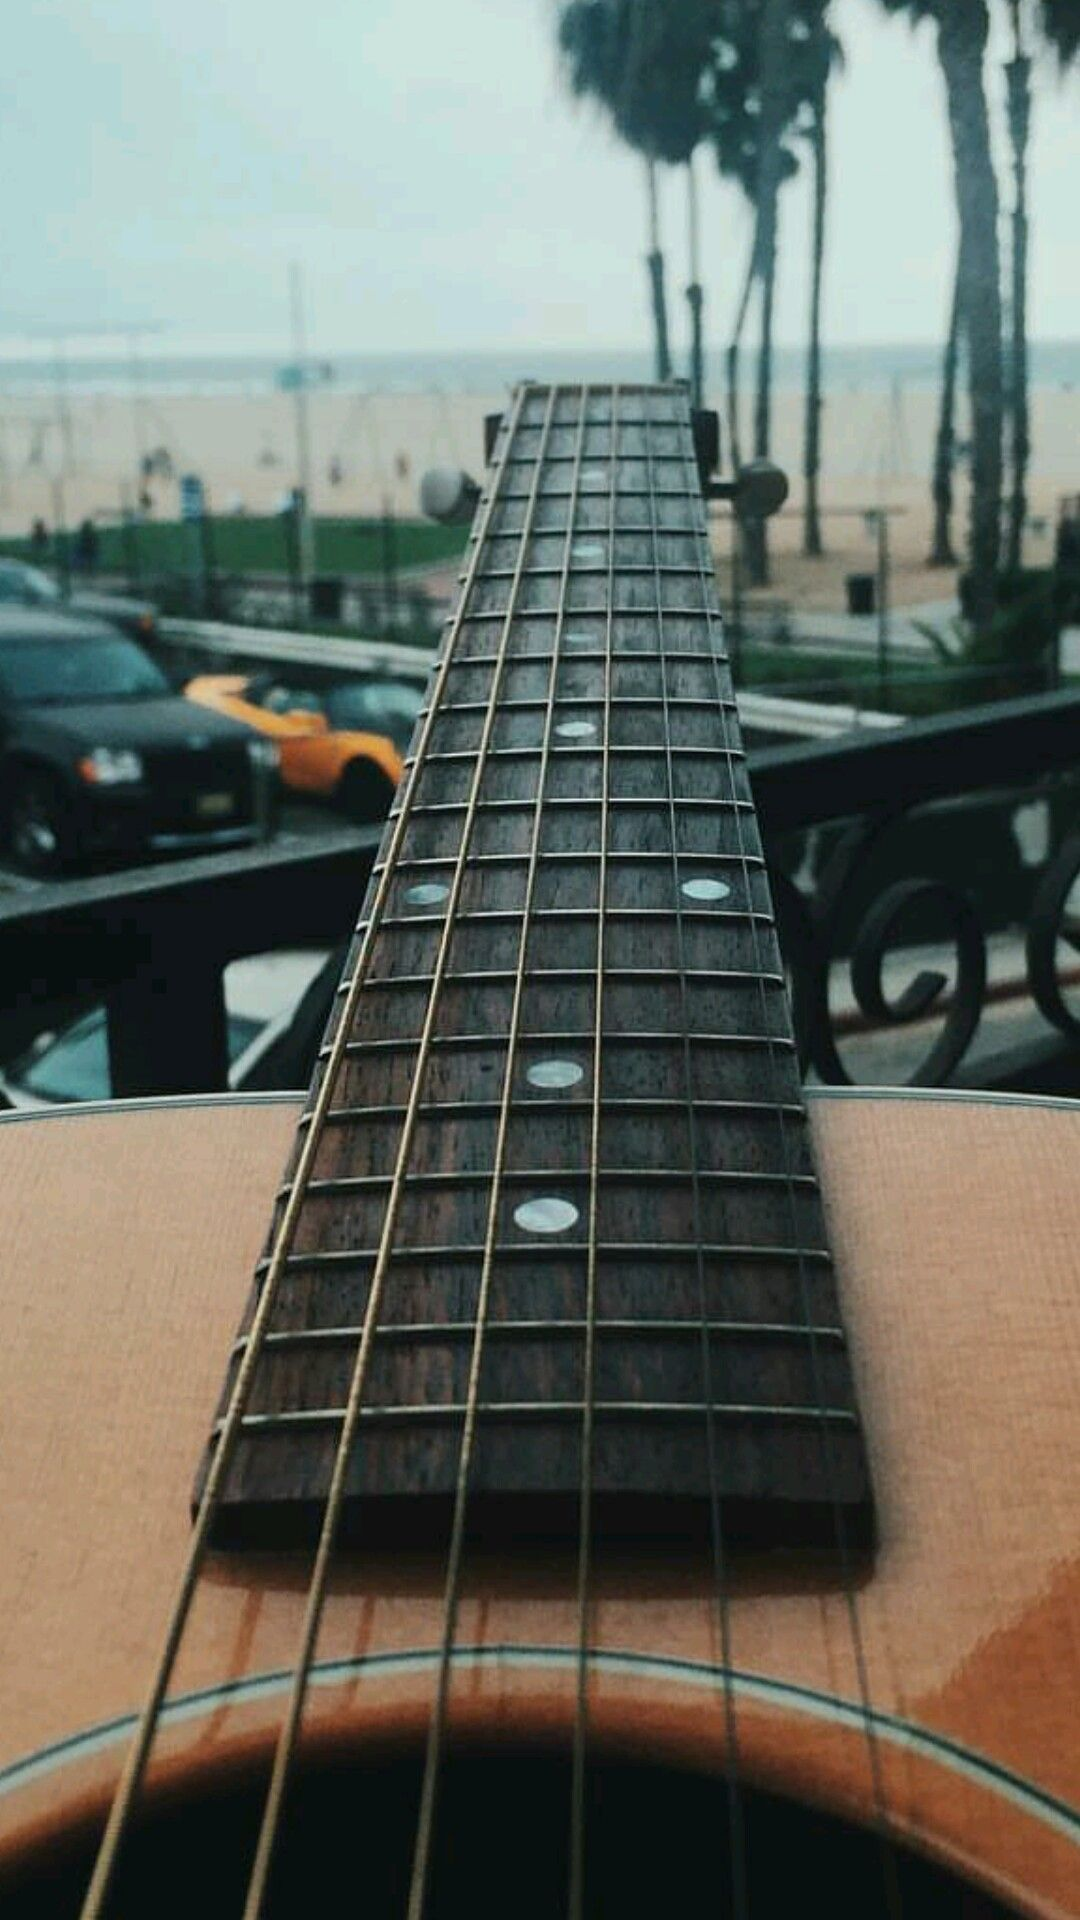 Guitar Wallpaper From Alex Aiono Post On Instagram Wallpapers In